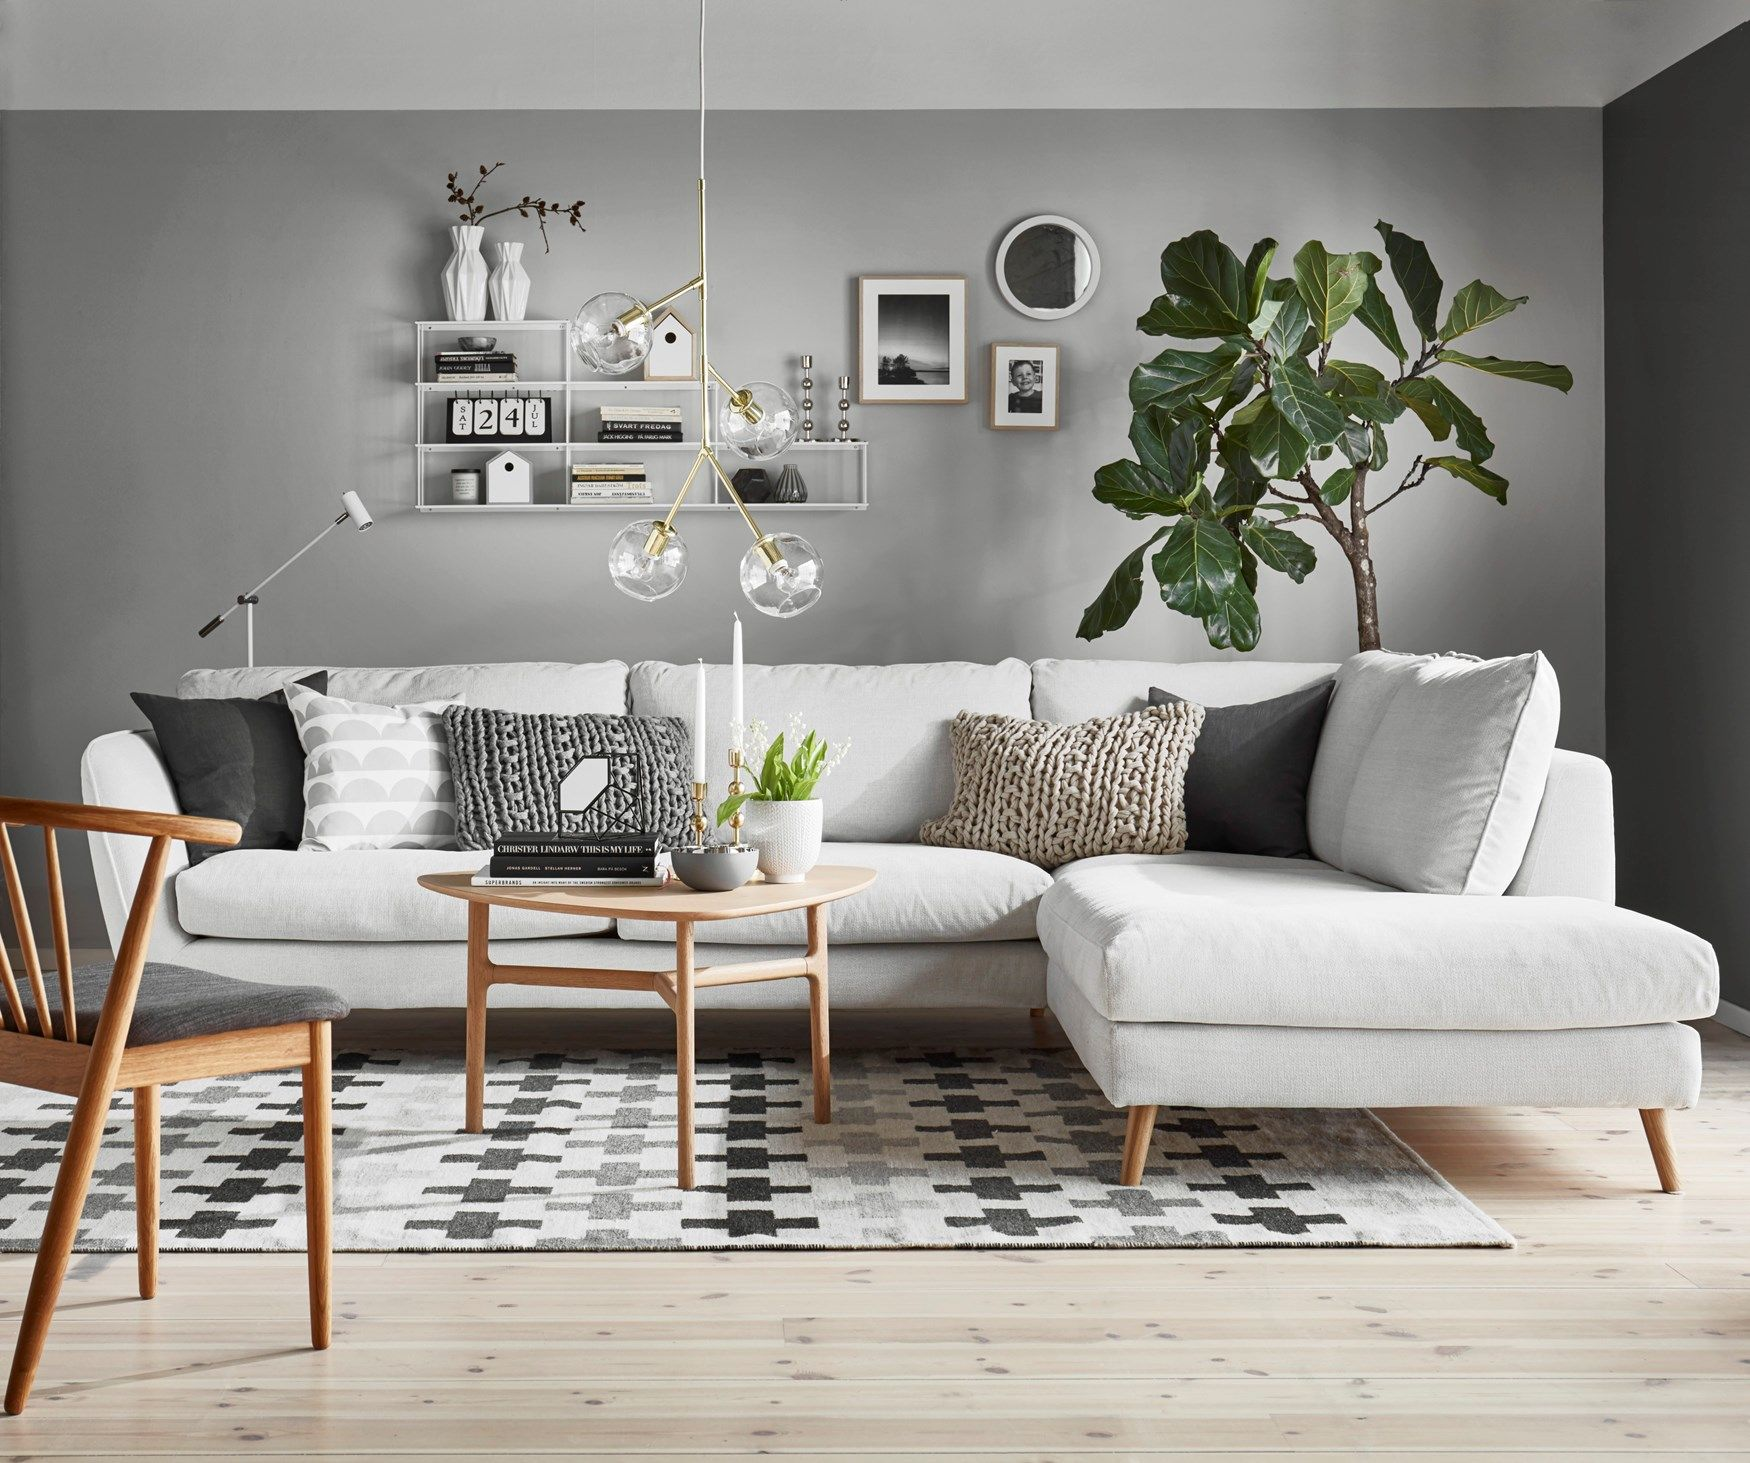 Helt nya Madison Lux 3-sits soffa med divan från Mio. | Decor ideas LI-23